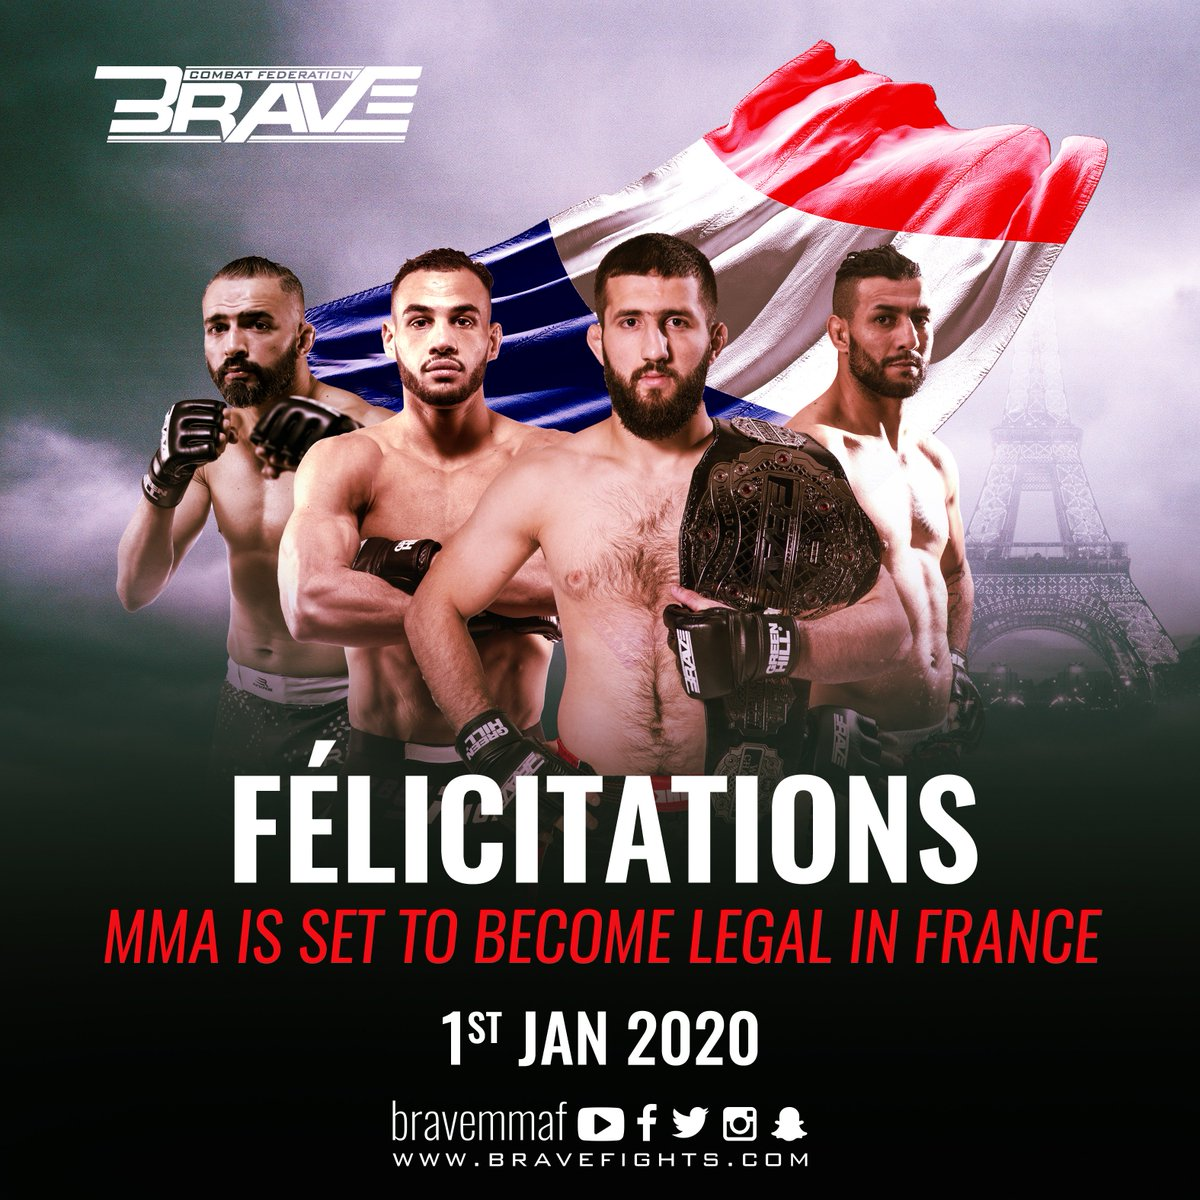 Awesome news! MMA is going to be legal in France starting January 1st, 2020! #MMA #France #FrenchMMA #Paris #Europe #BRAVECF